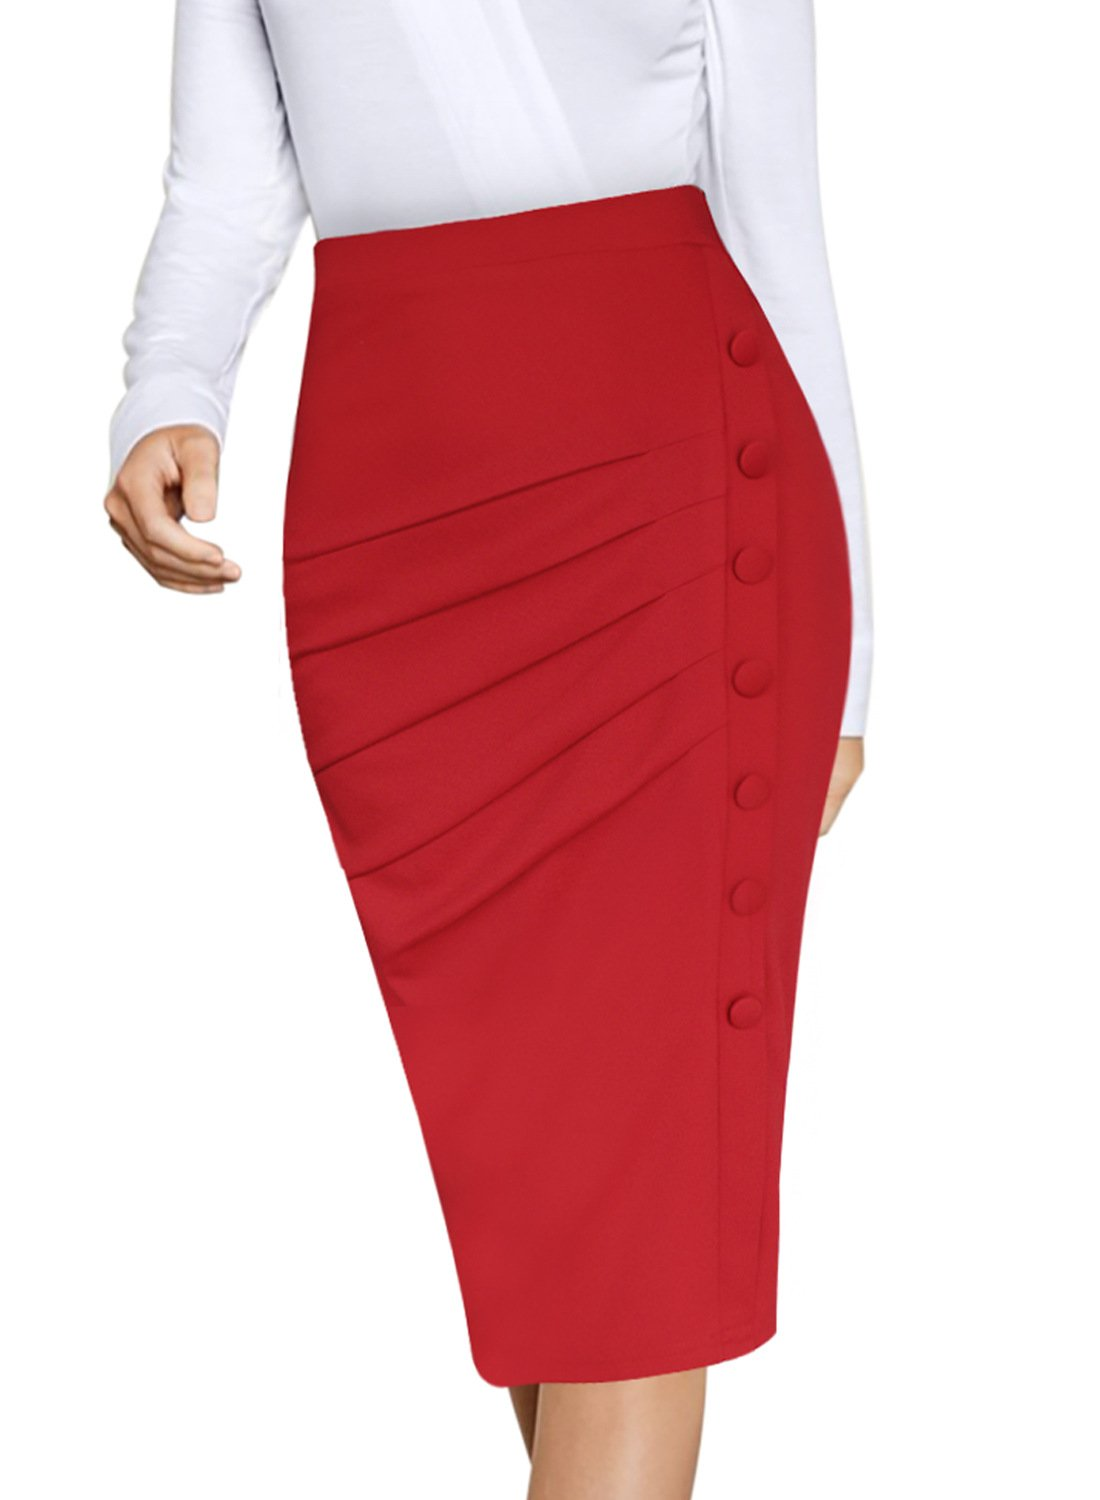 VFSHOW Womens Pleated Buttons High Waist Wear to Work Office Pencil Skirt 021 RED XS